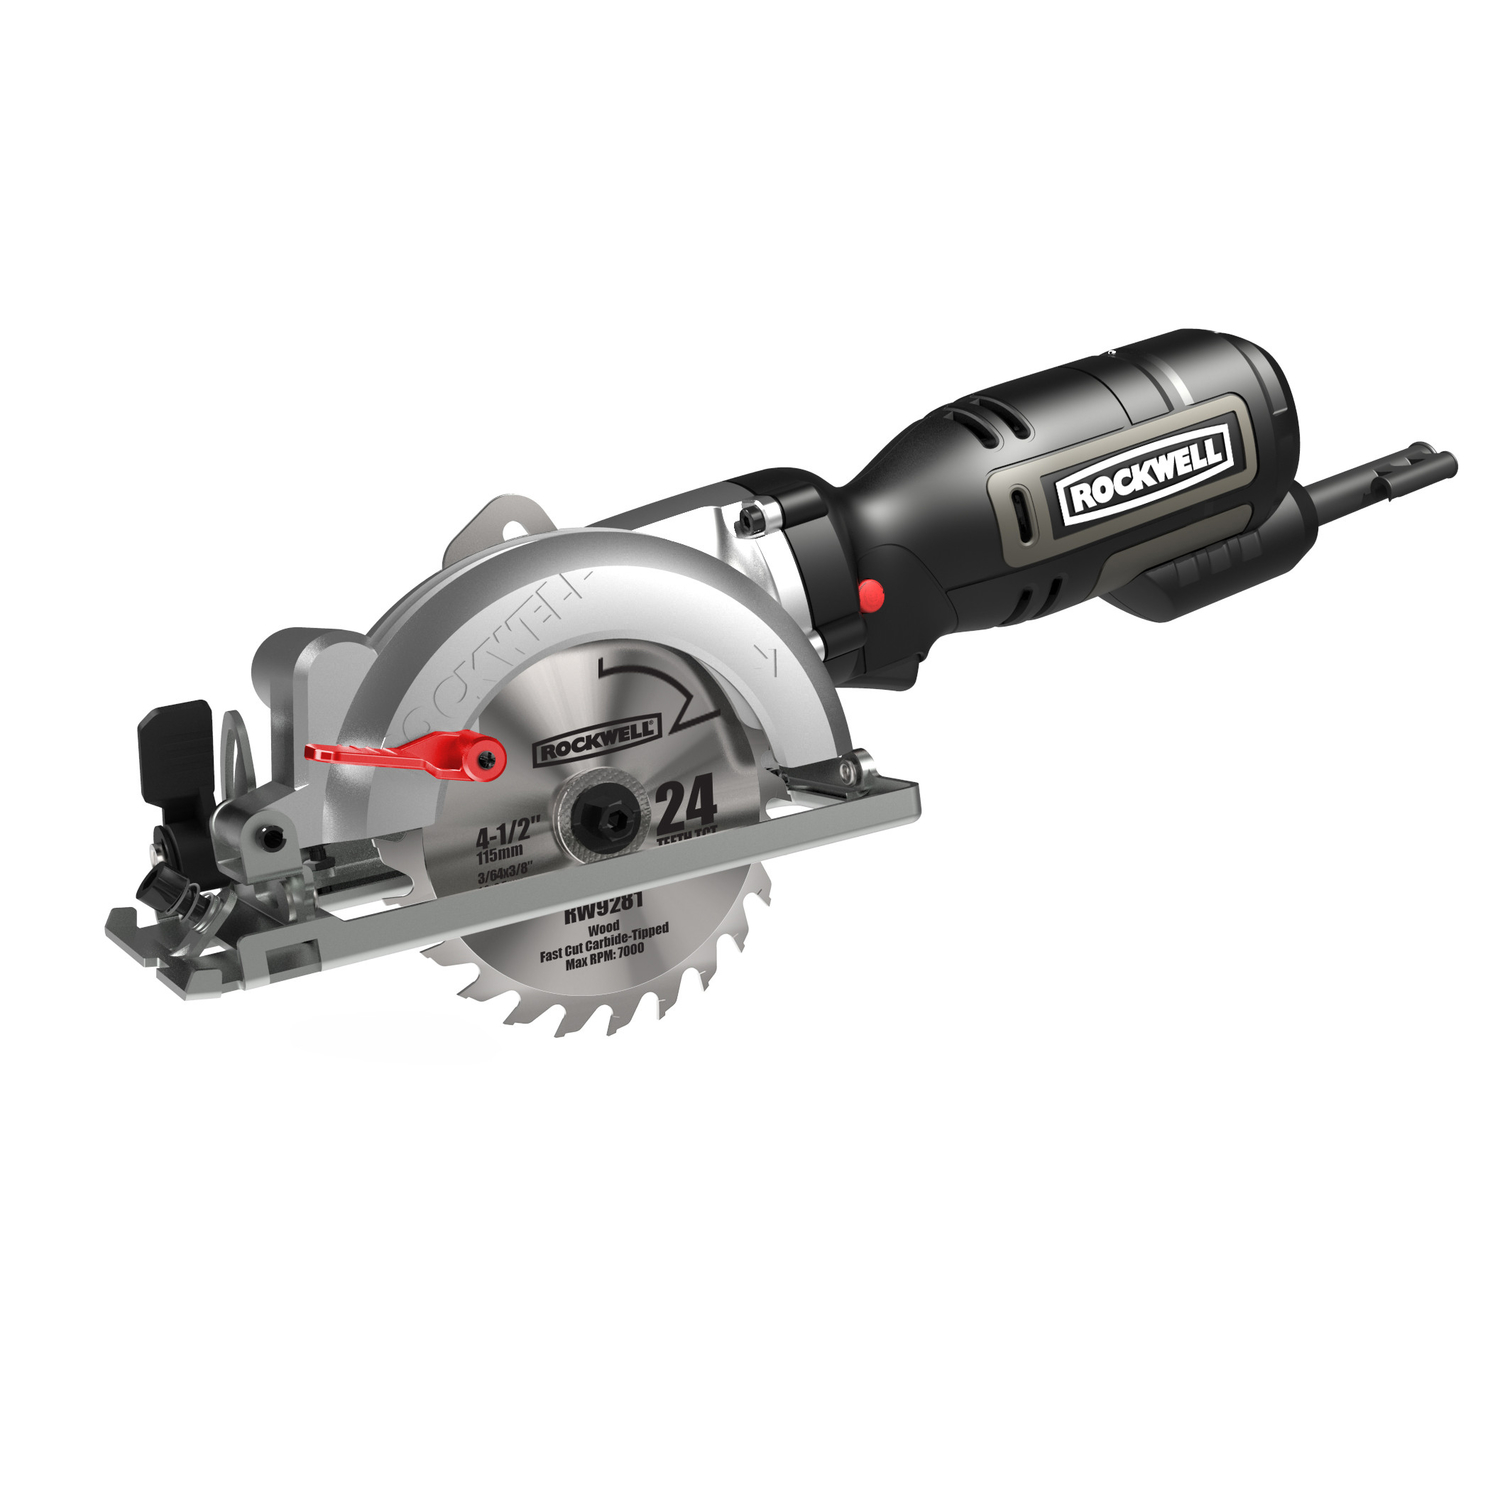 Rockwell Compact 120 Volts Circular Saw 4 1 2 In 3500 Rpm 5 Amps Ox 7000 Cutlery Set With Hanger